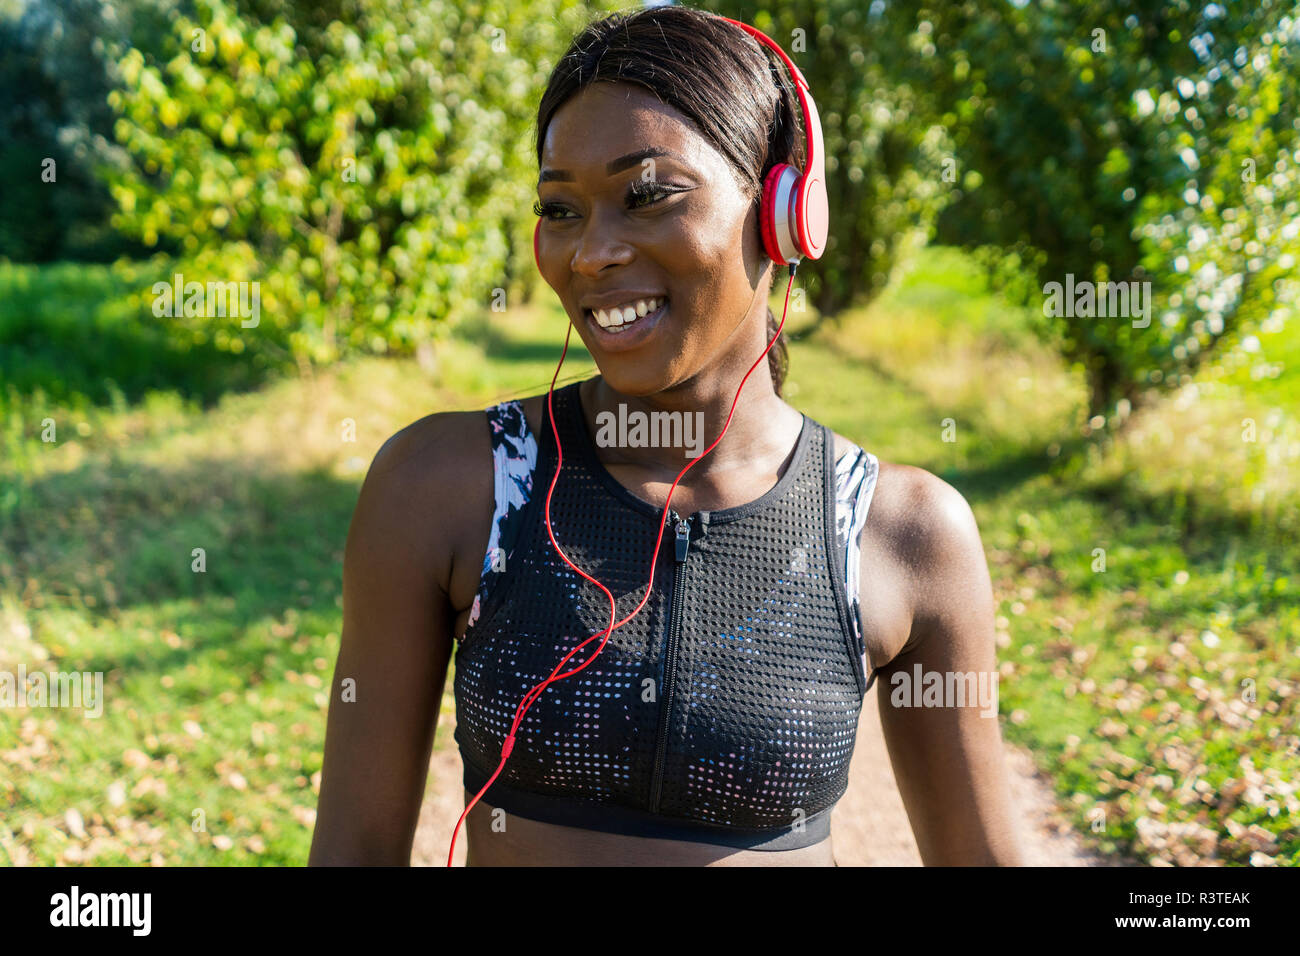 Young athlete in nature, listening music with headphones - Stock Image